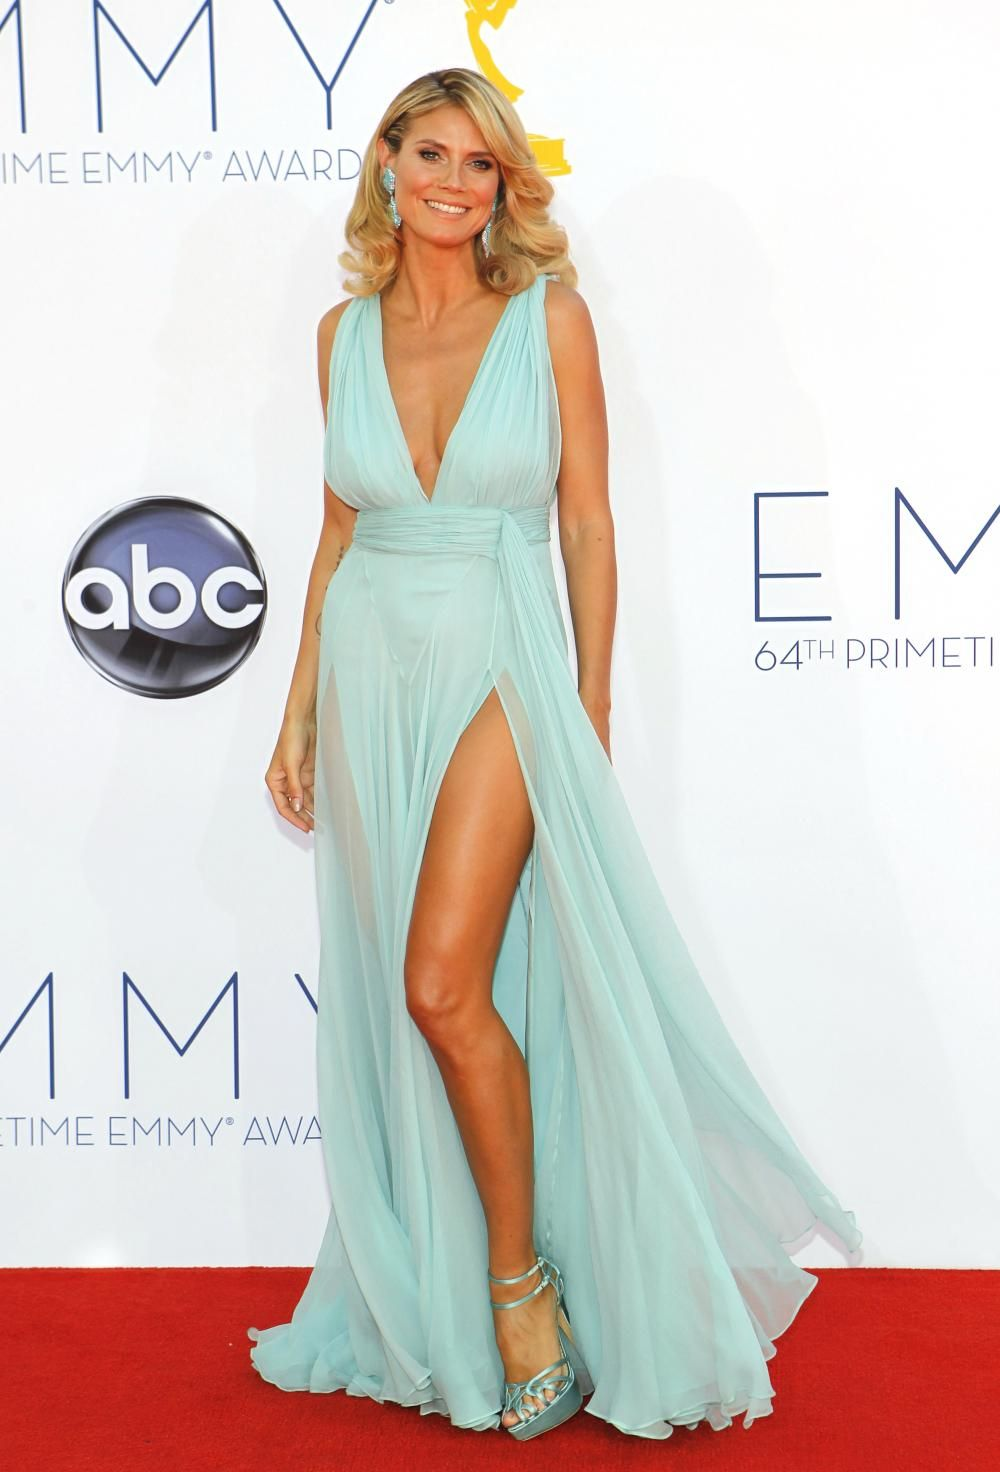 Emmy Awards 2012 Red Carpet Best Dressed: The Hits And Misses ...